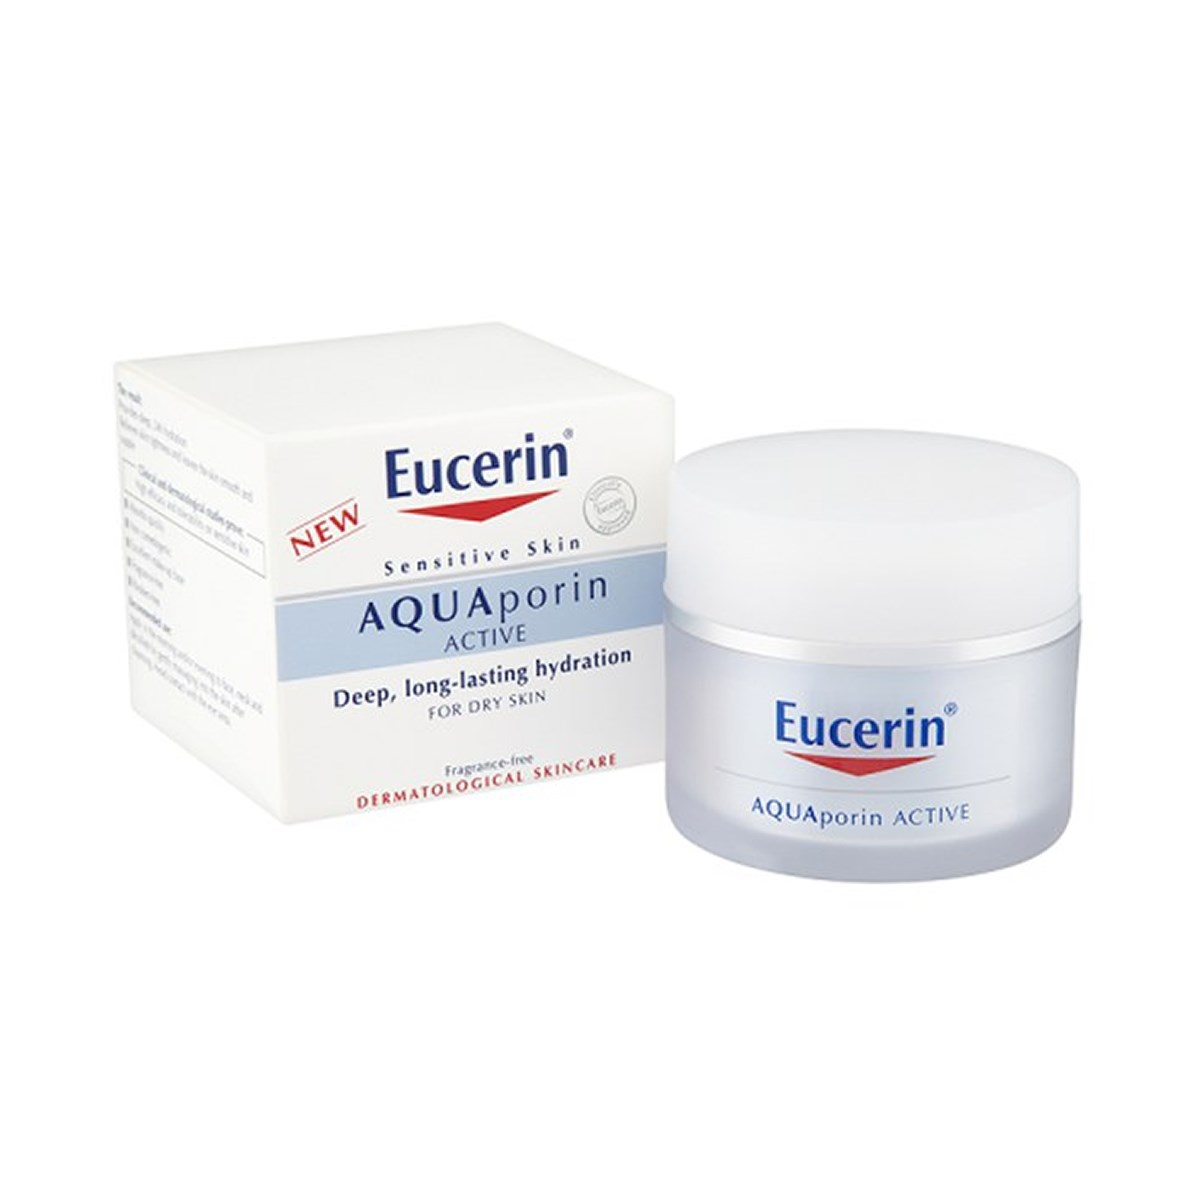 Eucerin AQUAporin Active Hydration For Dry Skin